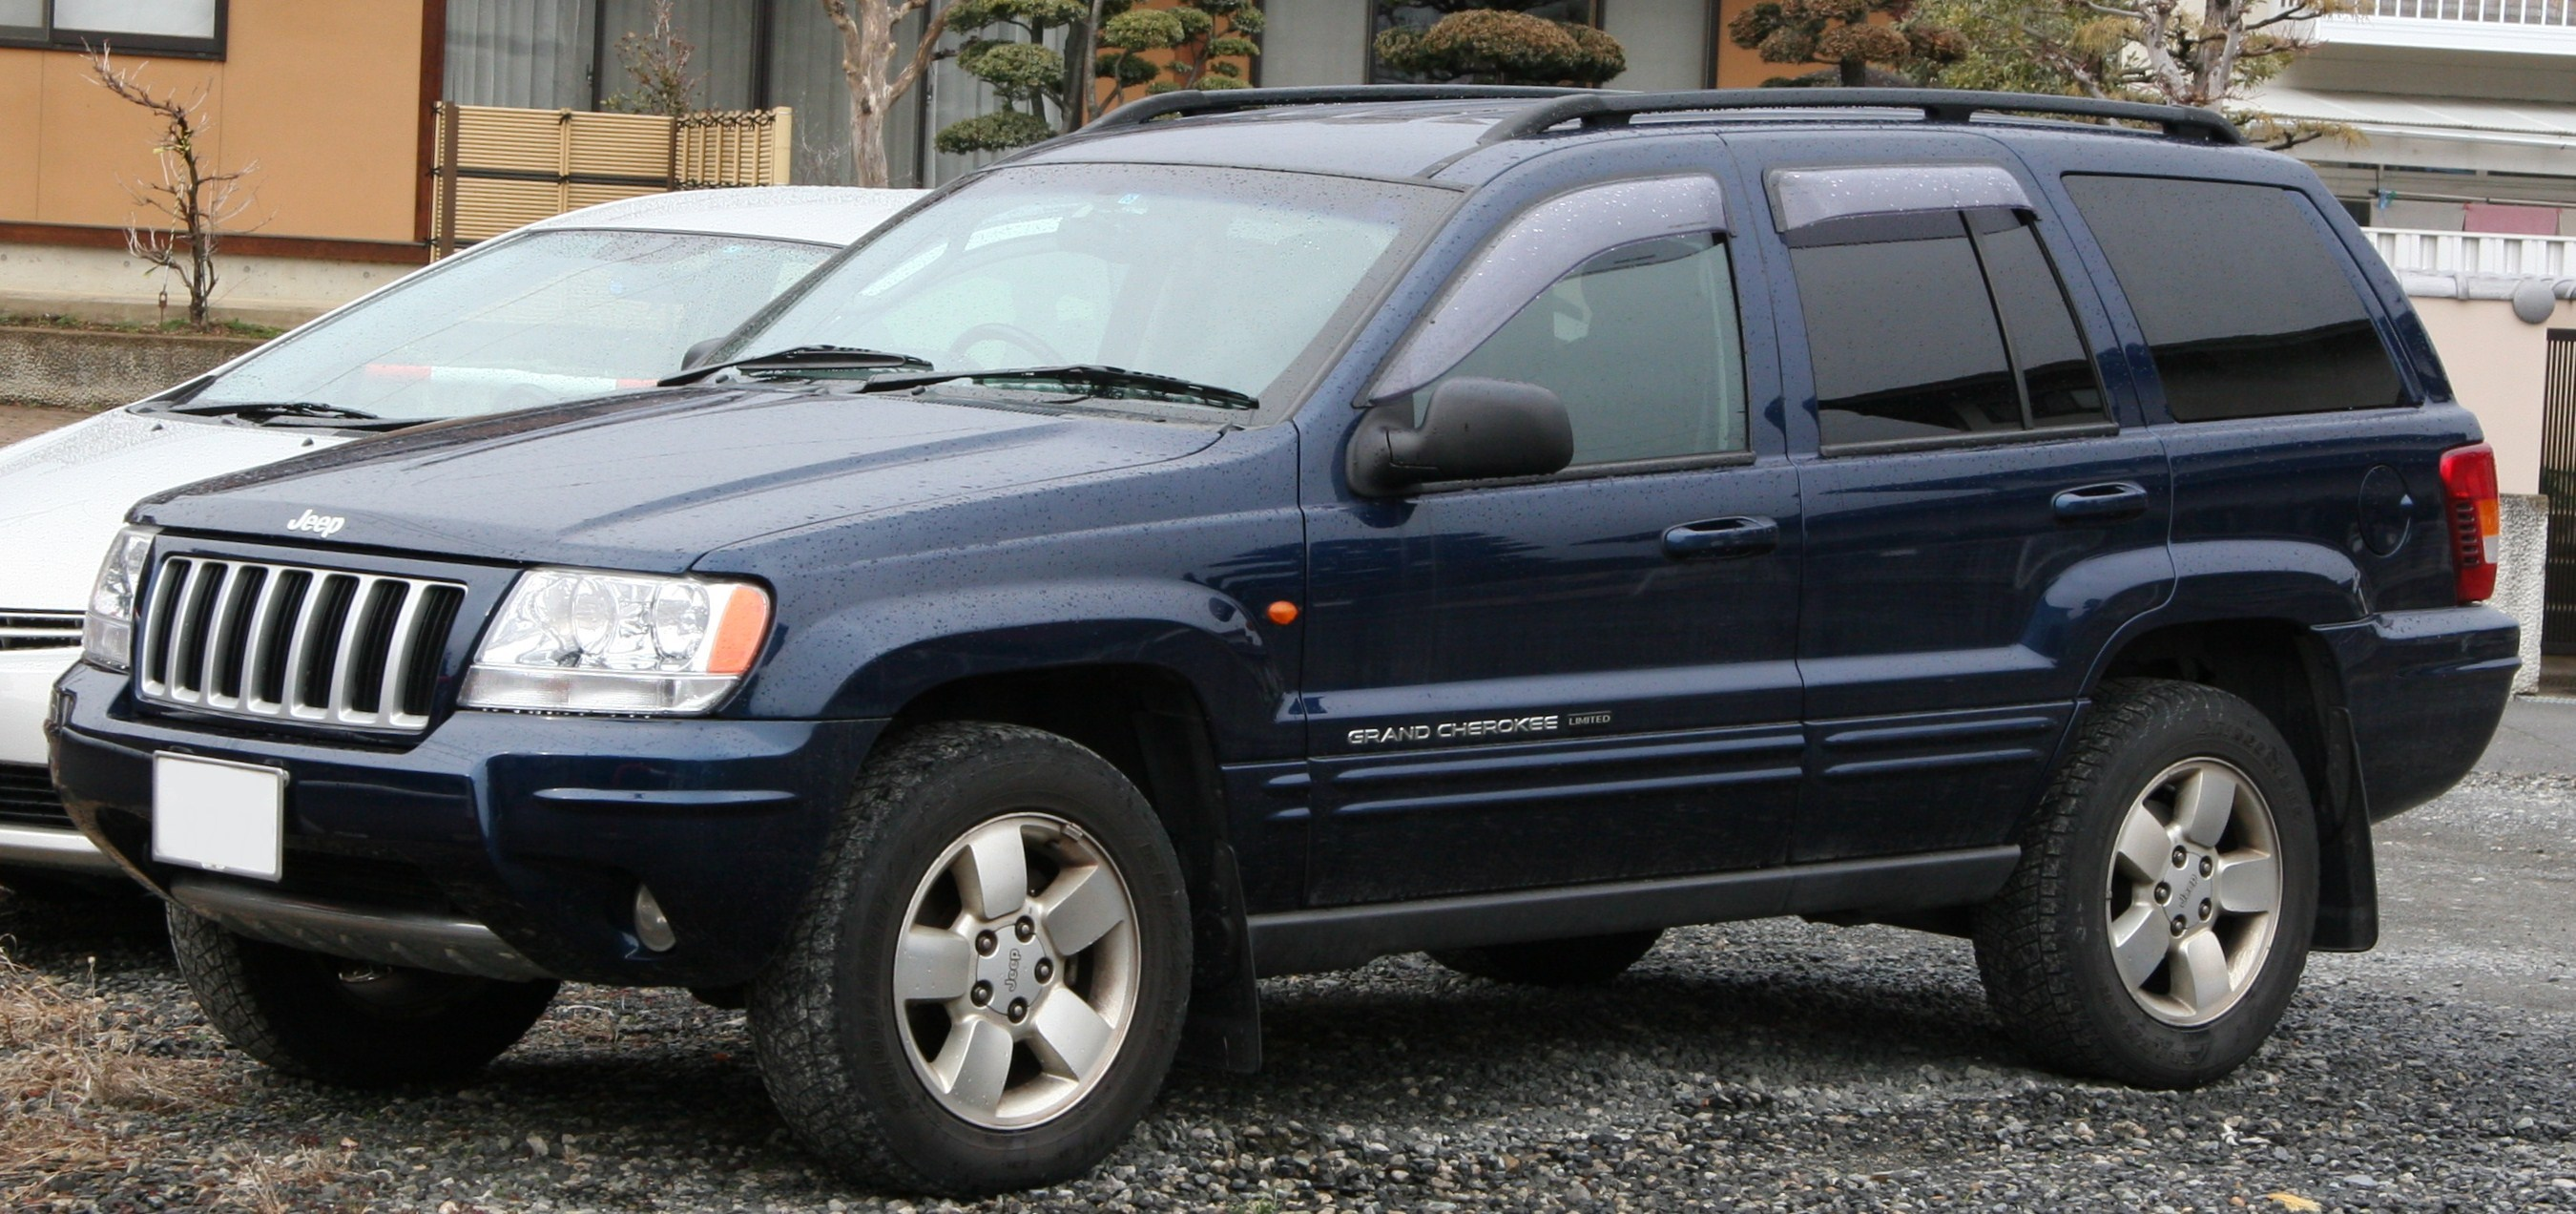 file 2003 2005 jeep grand cherokee limited jpg wikimedia commons https commons wikimedia org wiki file 2003 2005 jeep grand cherokee limited jpg